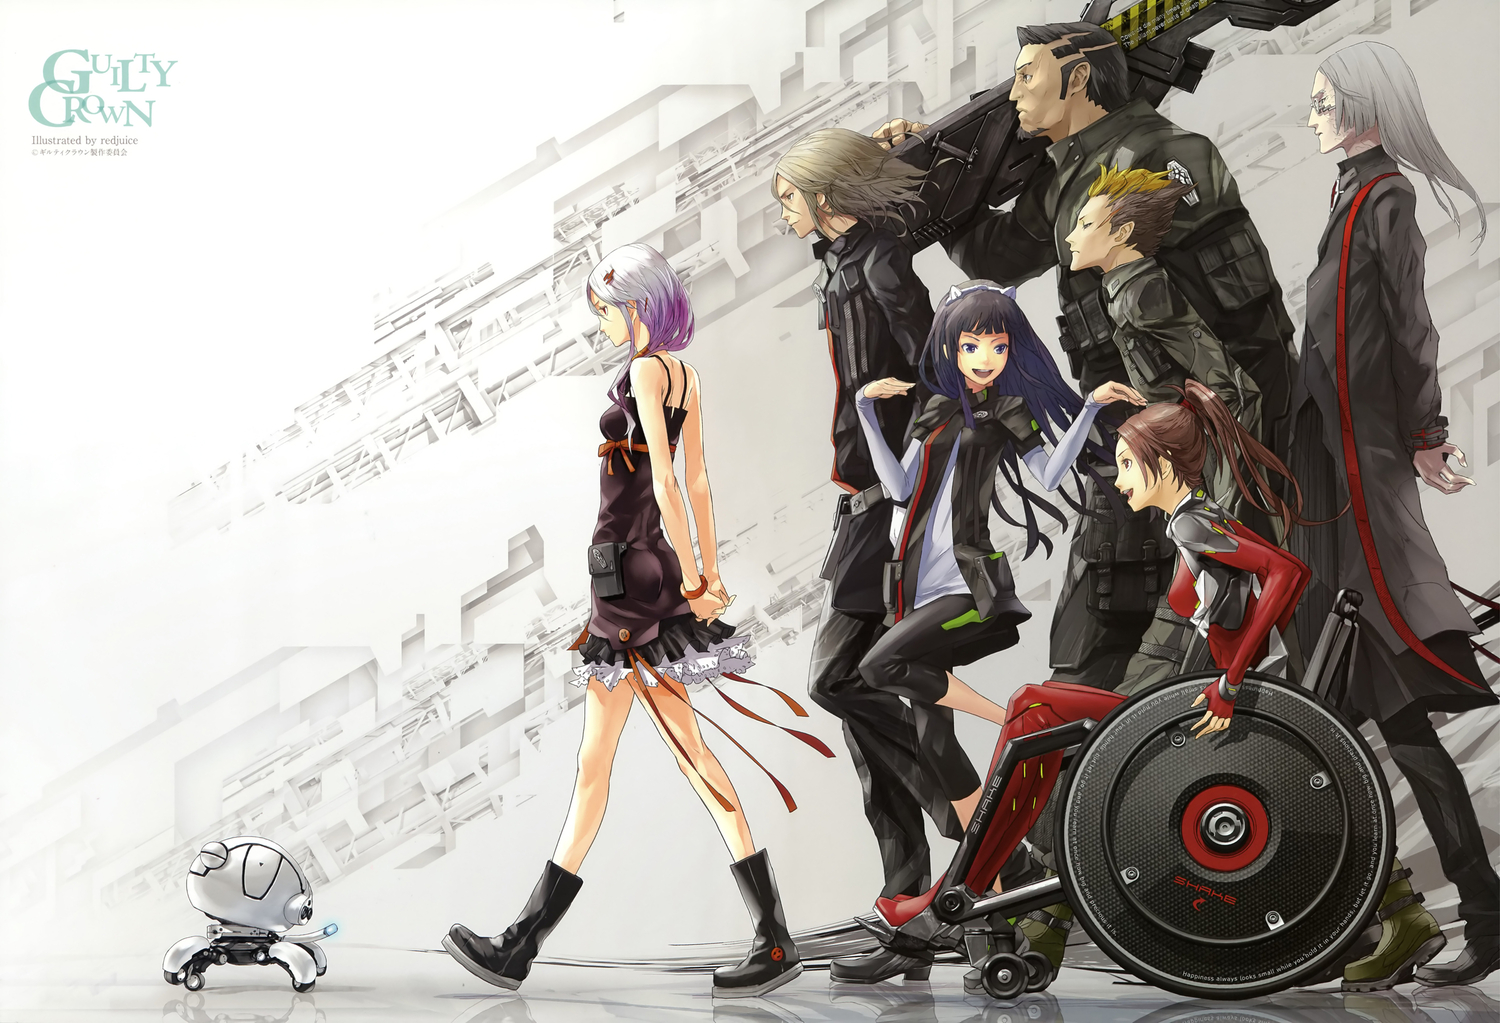 http://4.bp.blogspot.com/-pDH0q0WQ_Oo/T29uspO8AtI/AAAAAAAANWo/t4G3gPcKzJA/s1600/guilty-crown-animation-wallpaper.jpg